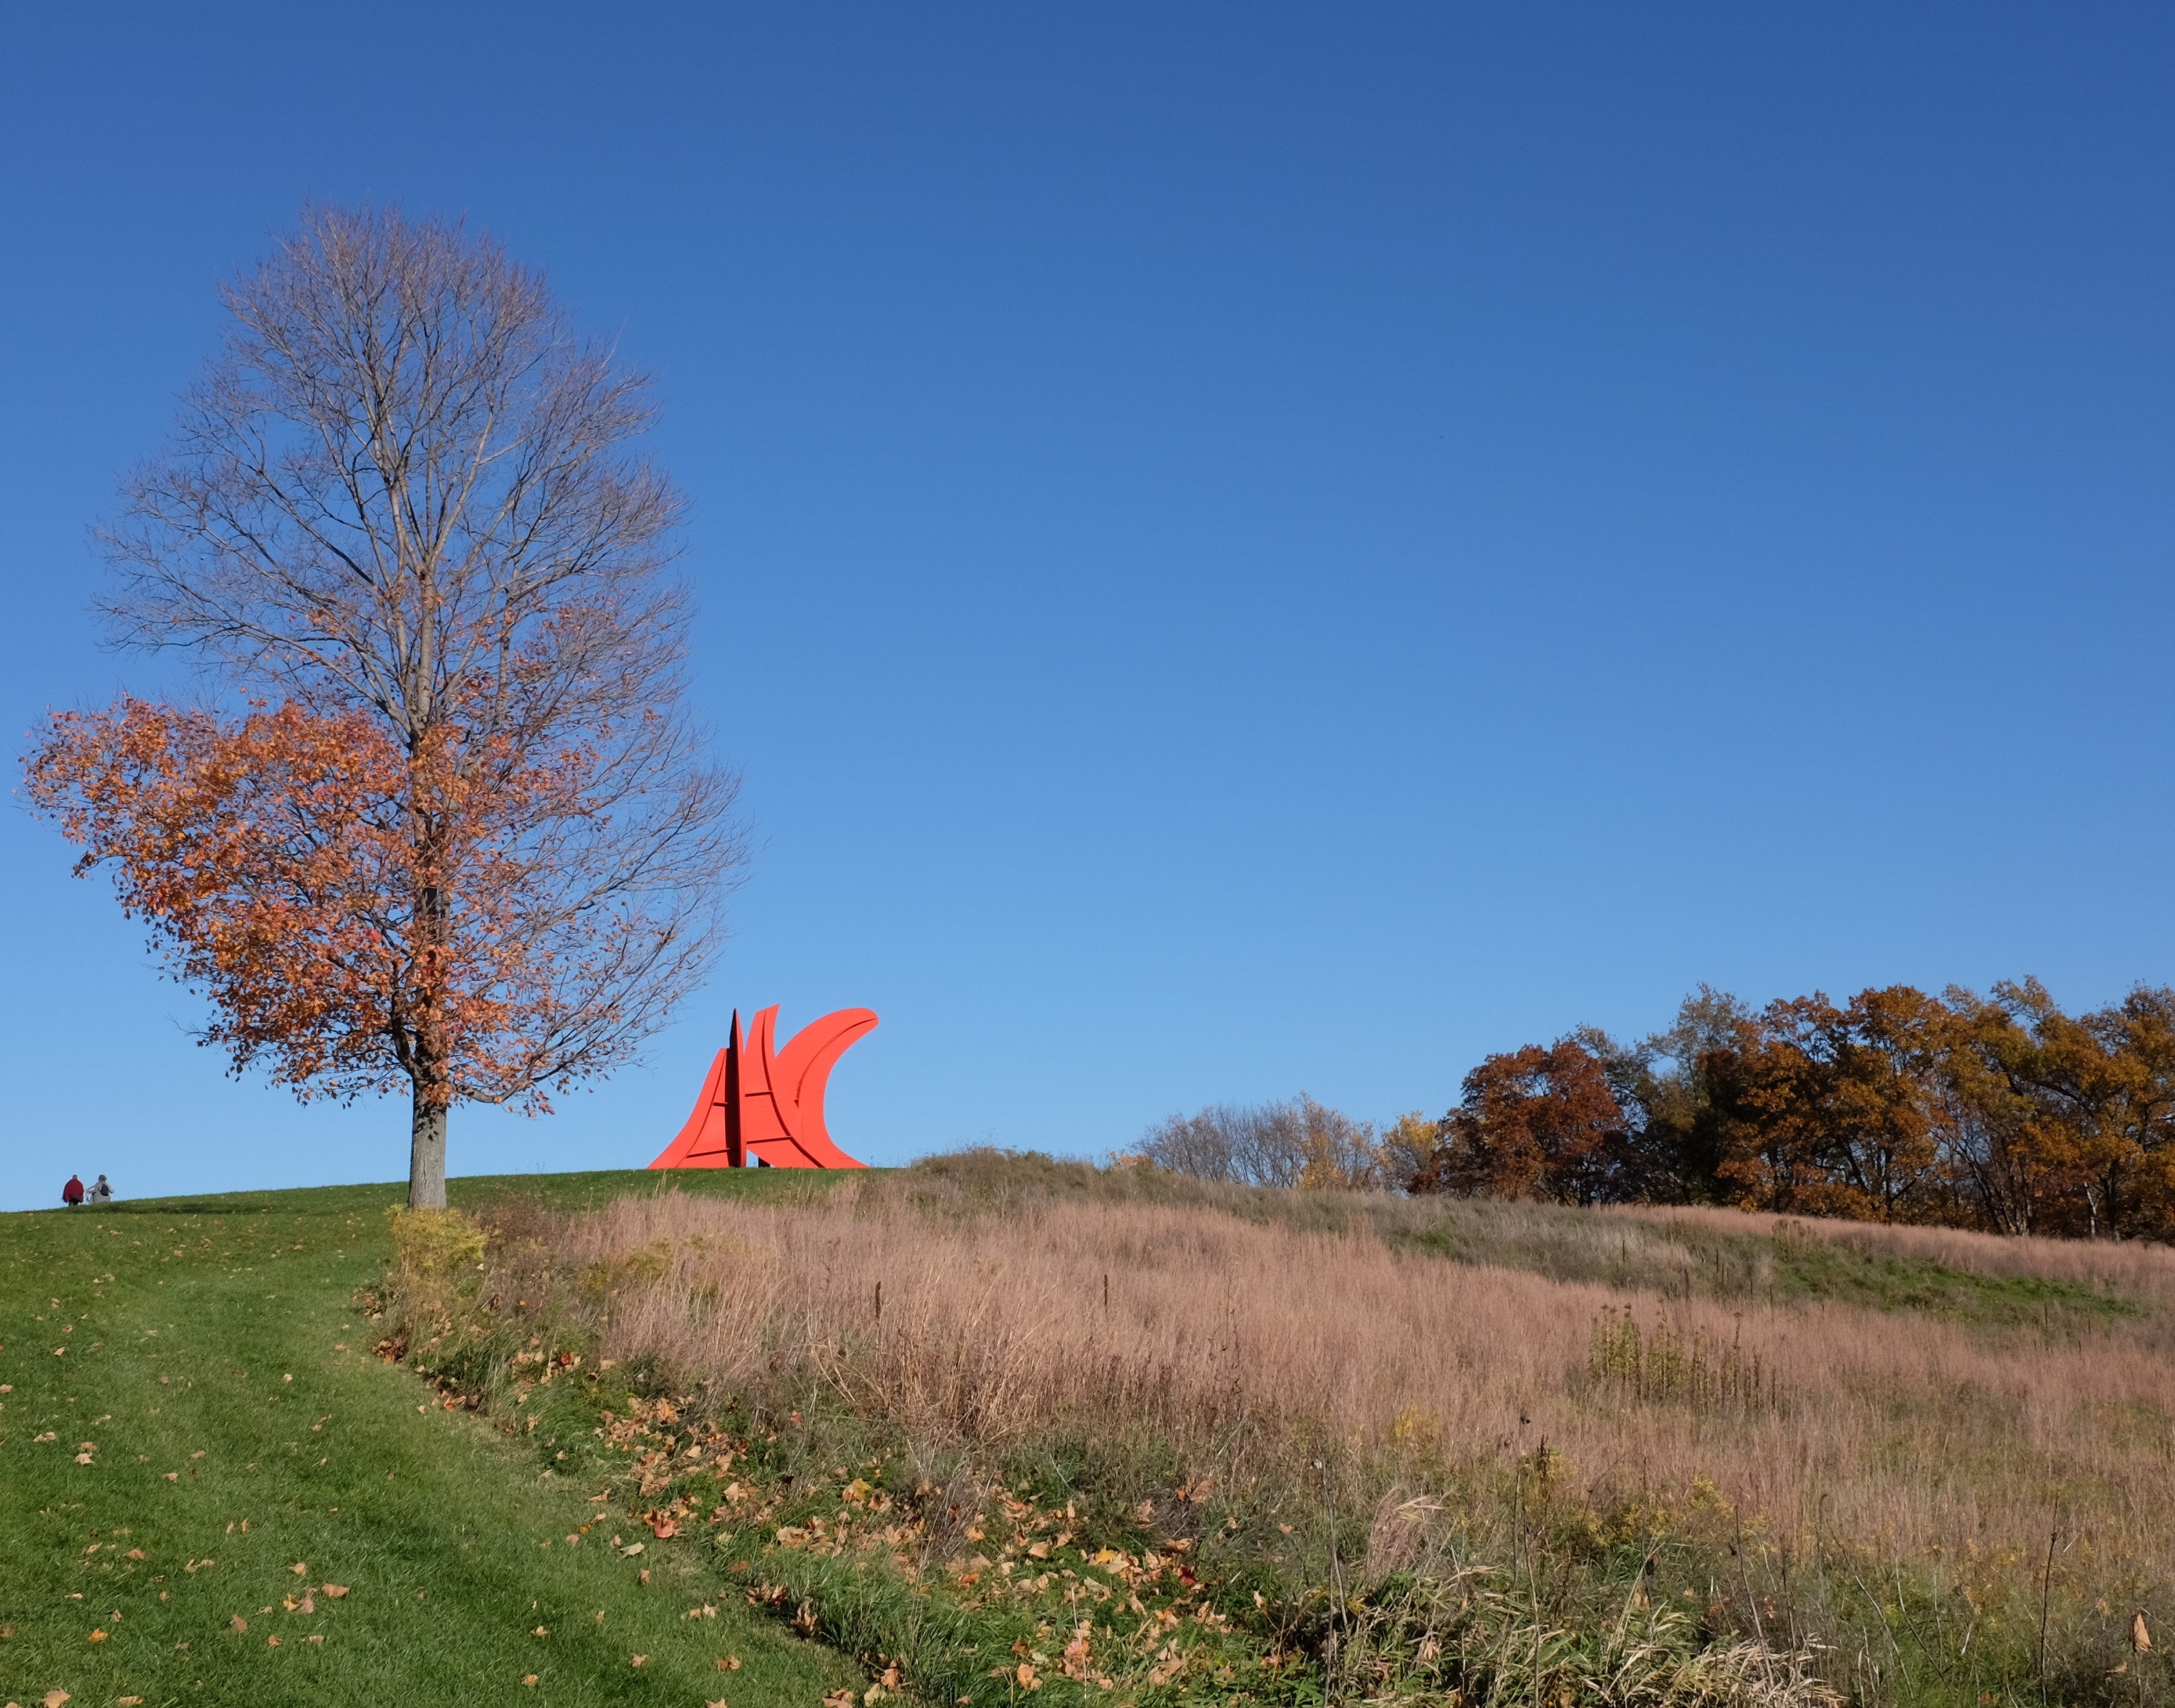 Five Swords, sculpture by Alexander Calder